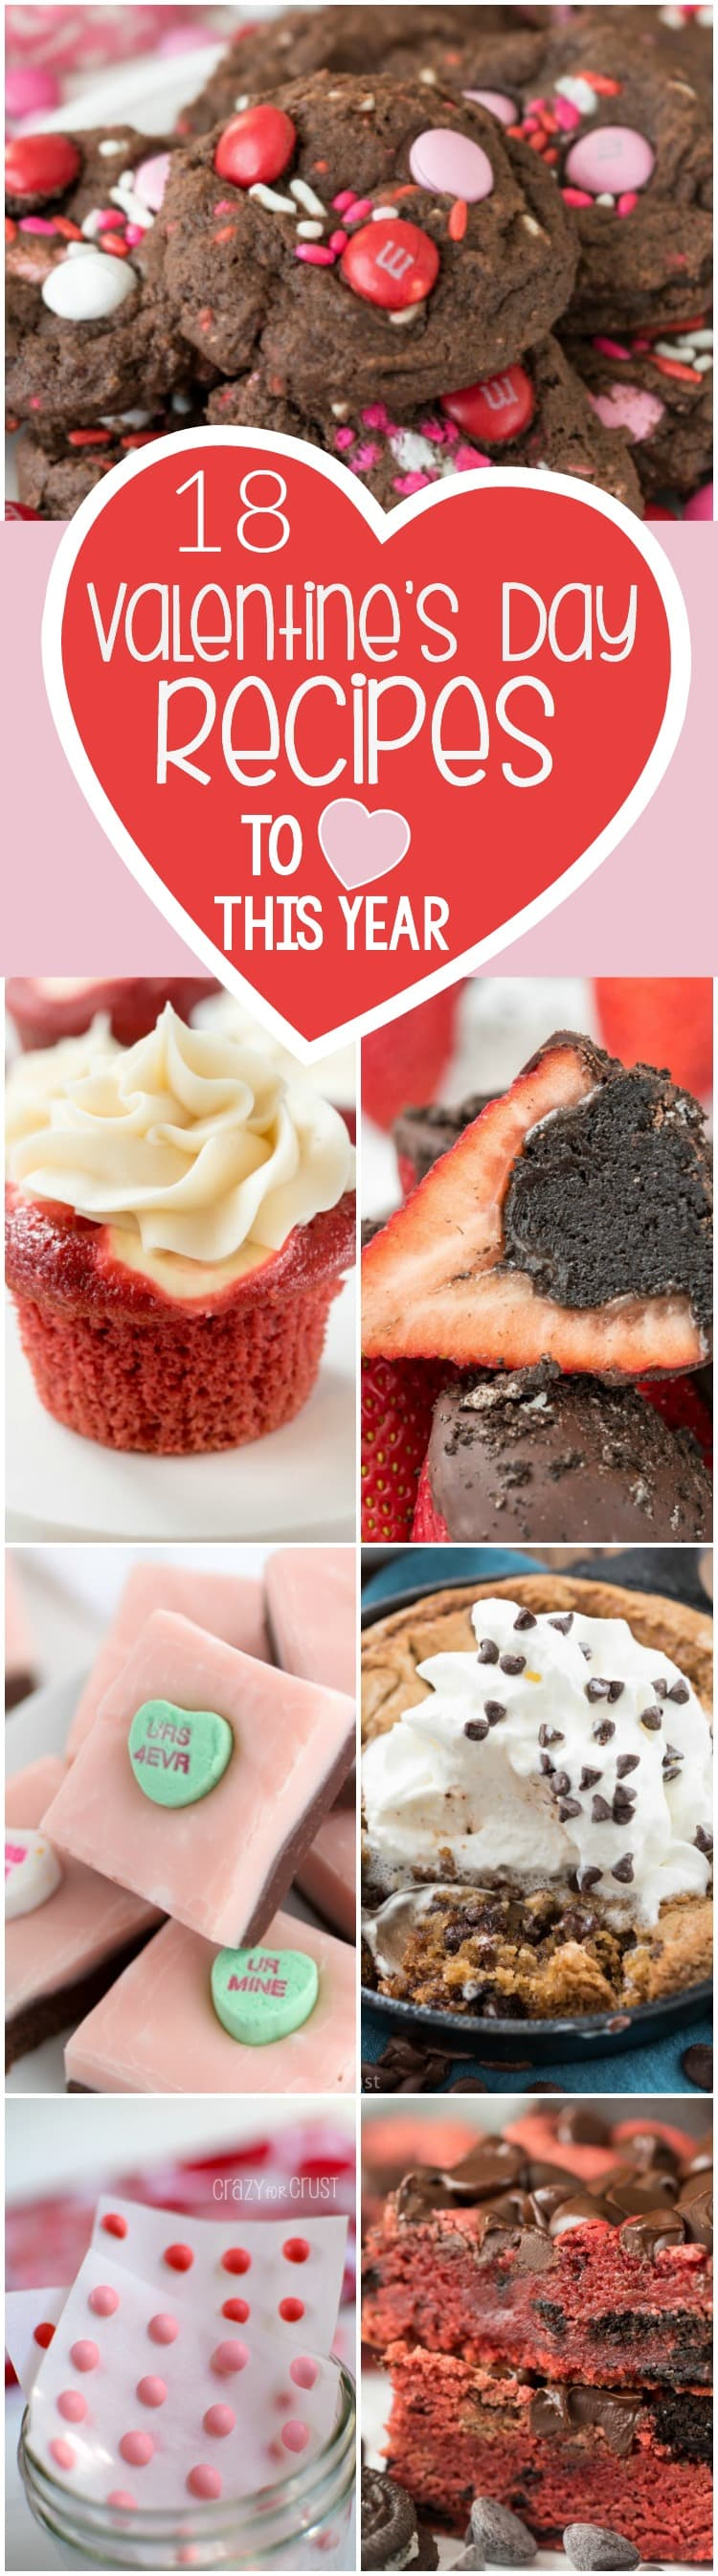 18 Valentine's Day Recipes to LOVE this year: easy cookies, cupcakes, fudge, red velvet, and desserts for 2!